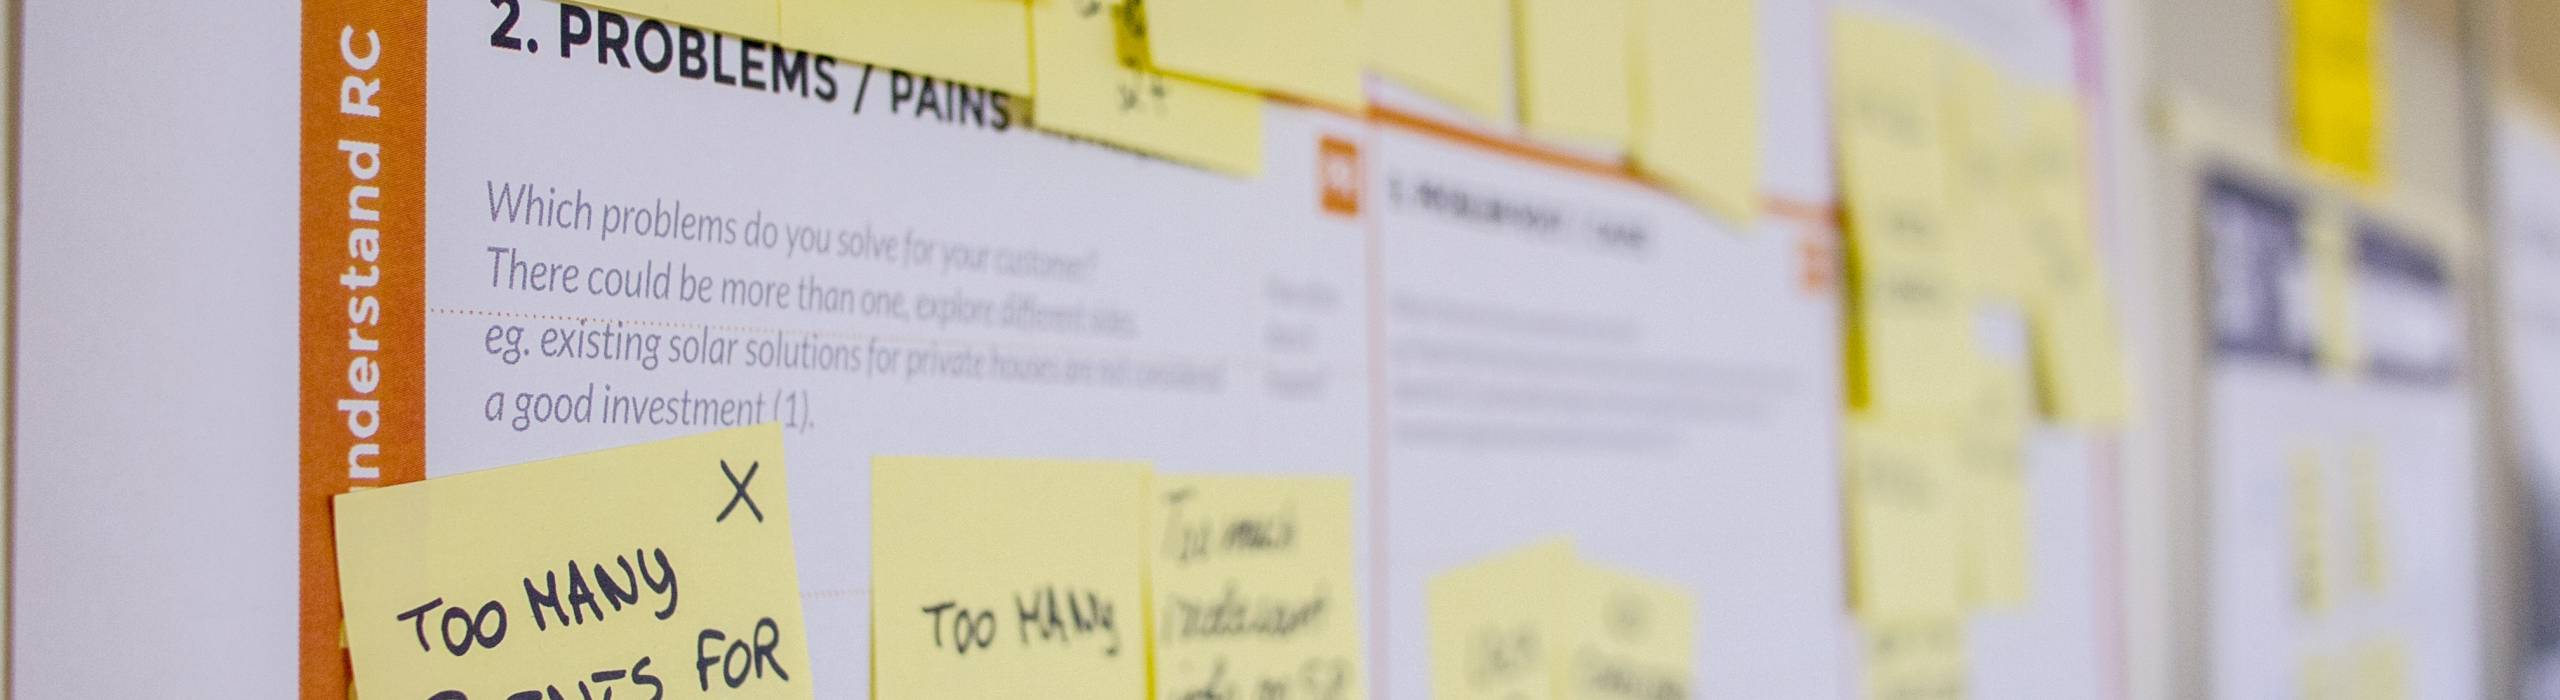 Post-it Notes pinned to a big board